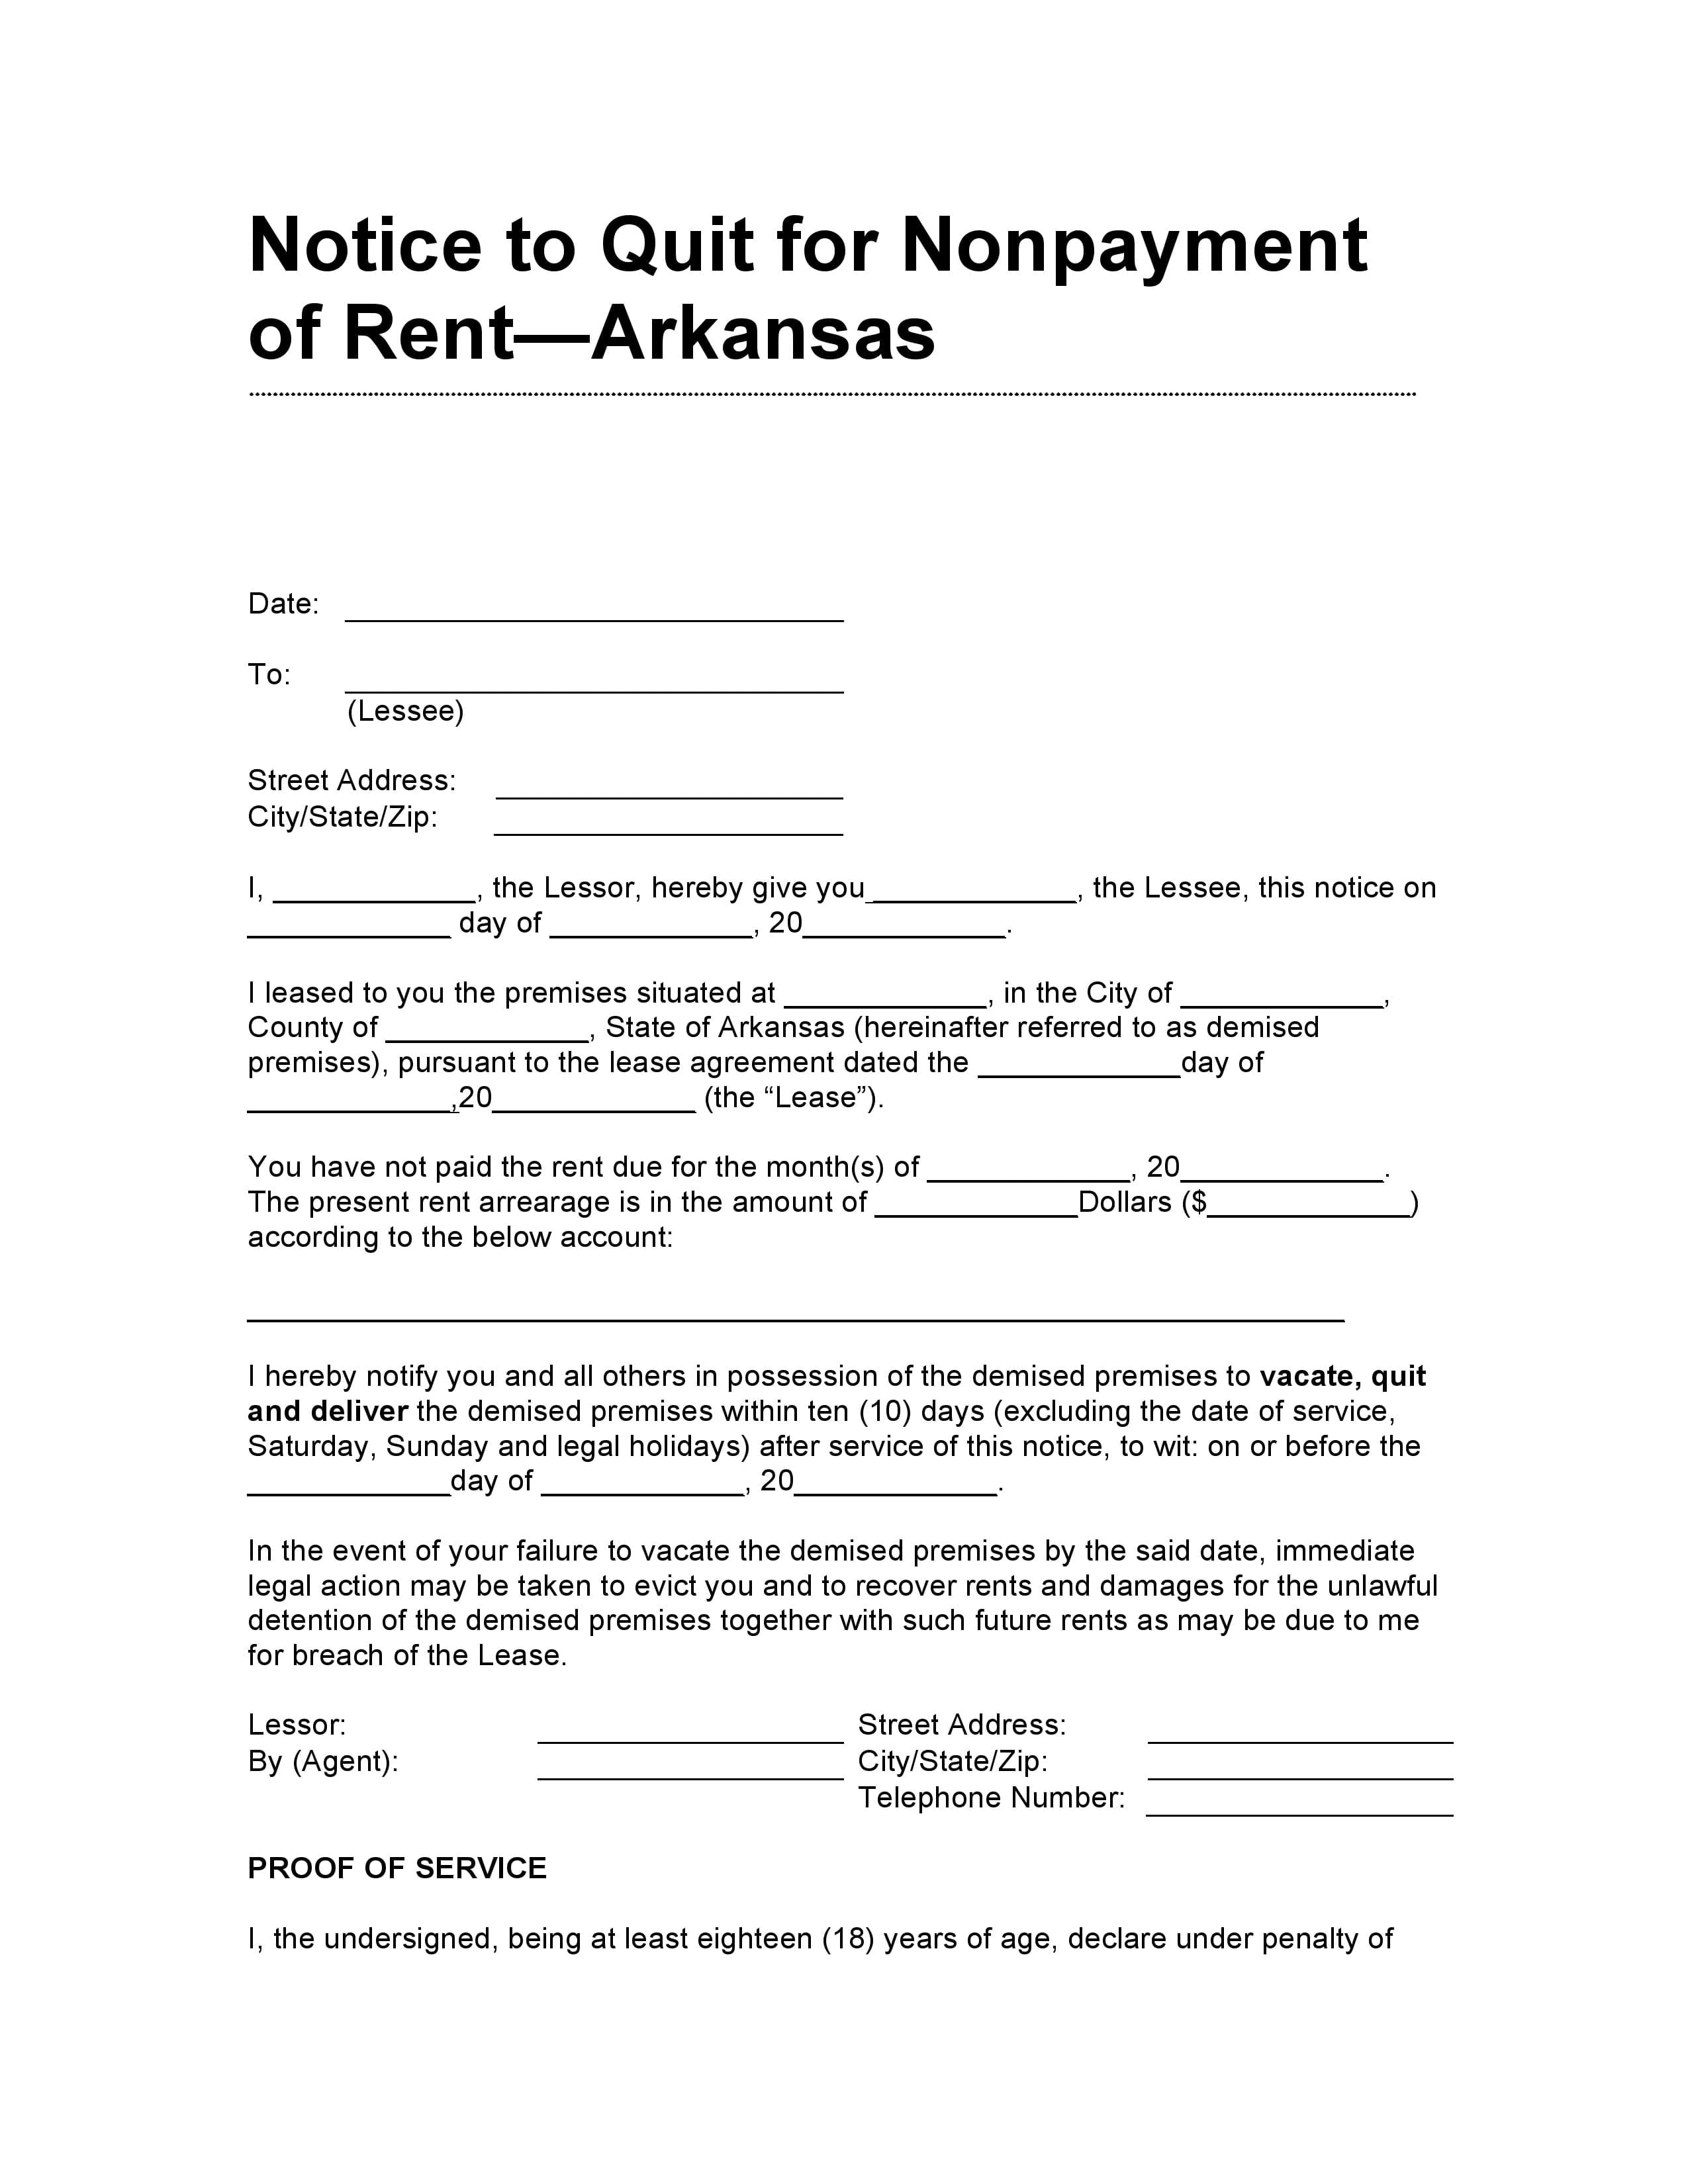 Eviction Notice Template Uk example blank printable eviction – Eviction Warning Letter